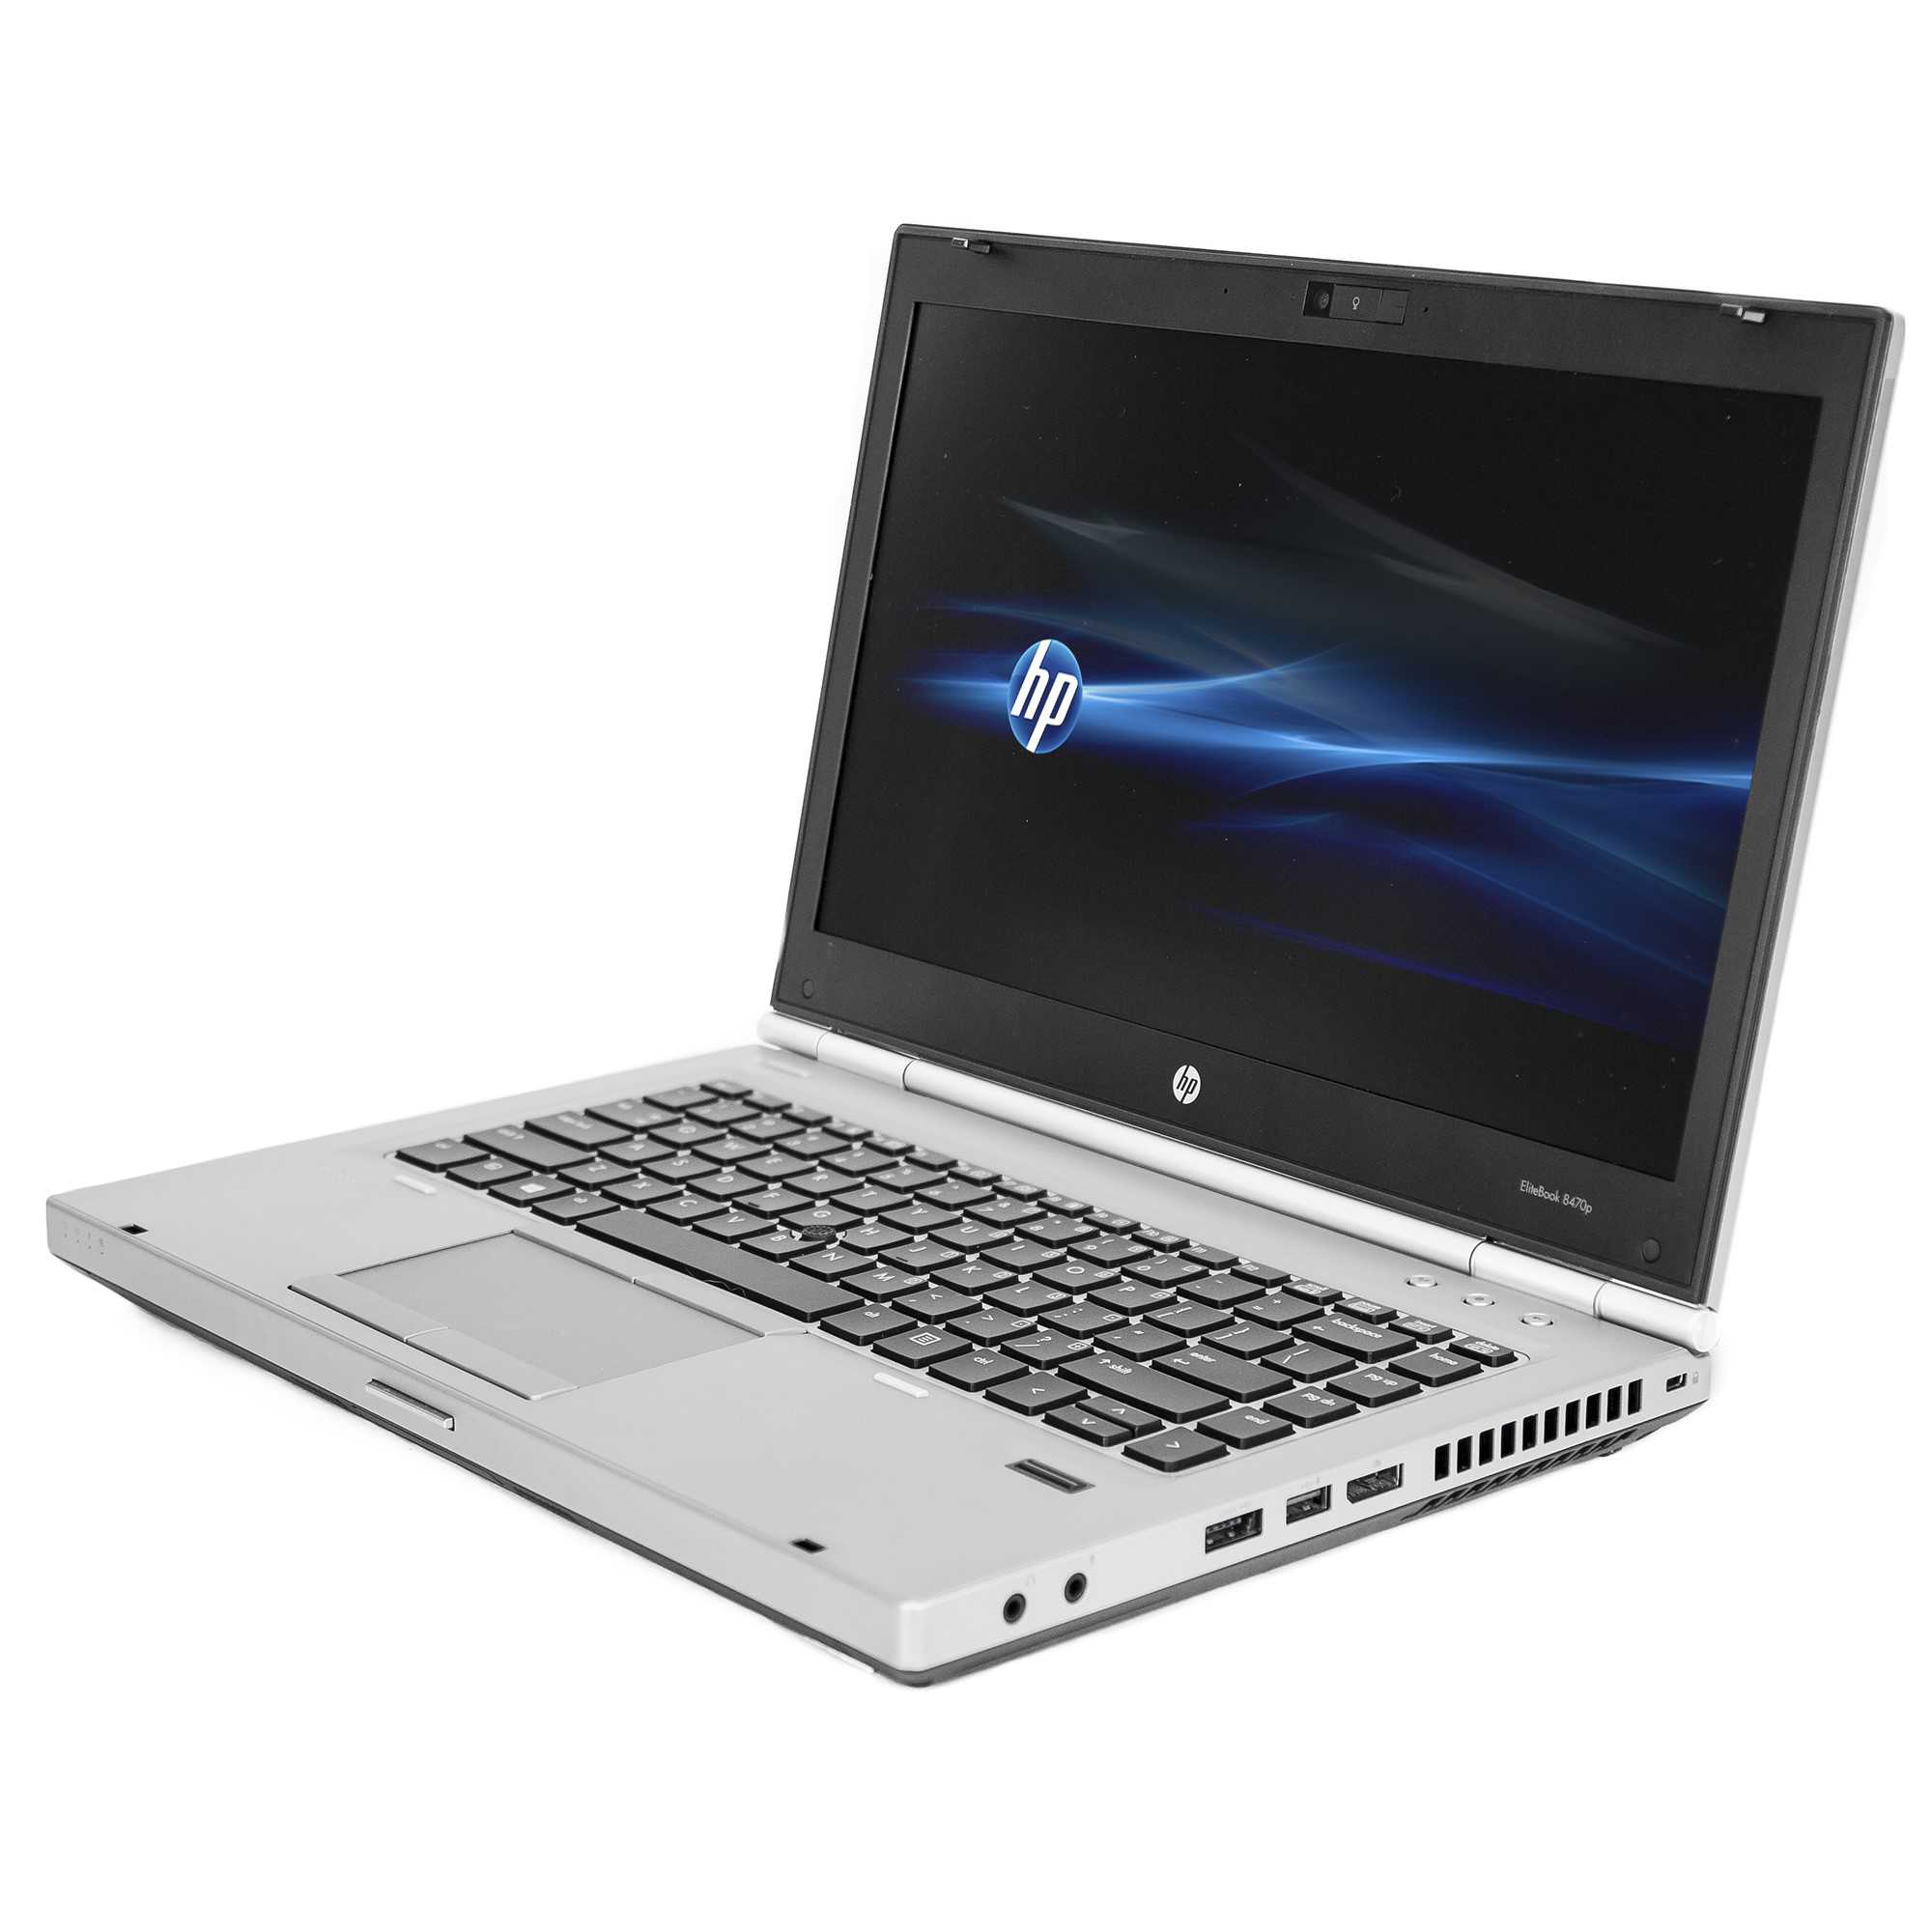 Refurbished HP 14' EliteBook 8470P Laptop PC with Intel Core i5-3320M Processor, 8GB Memory, 256GB SSD and Windows 10 Pro